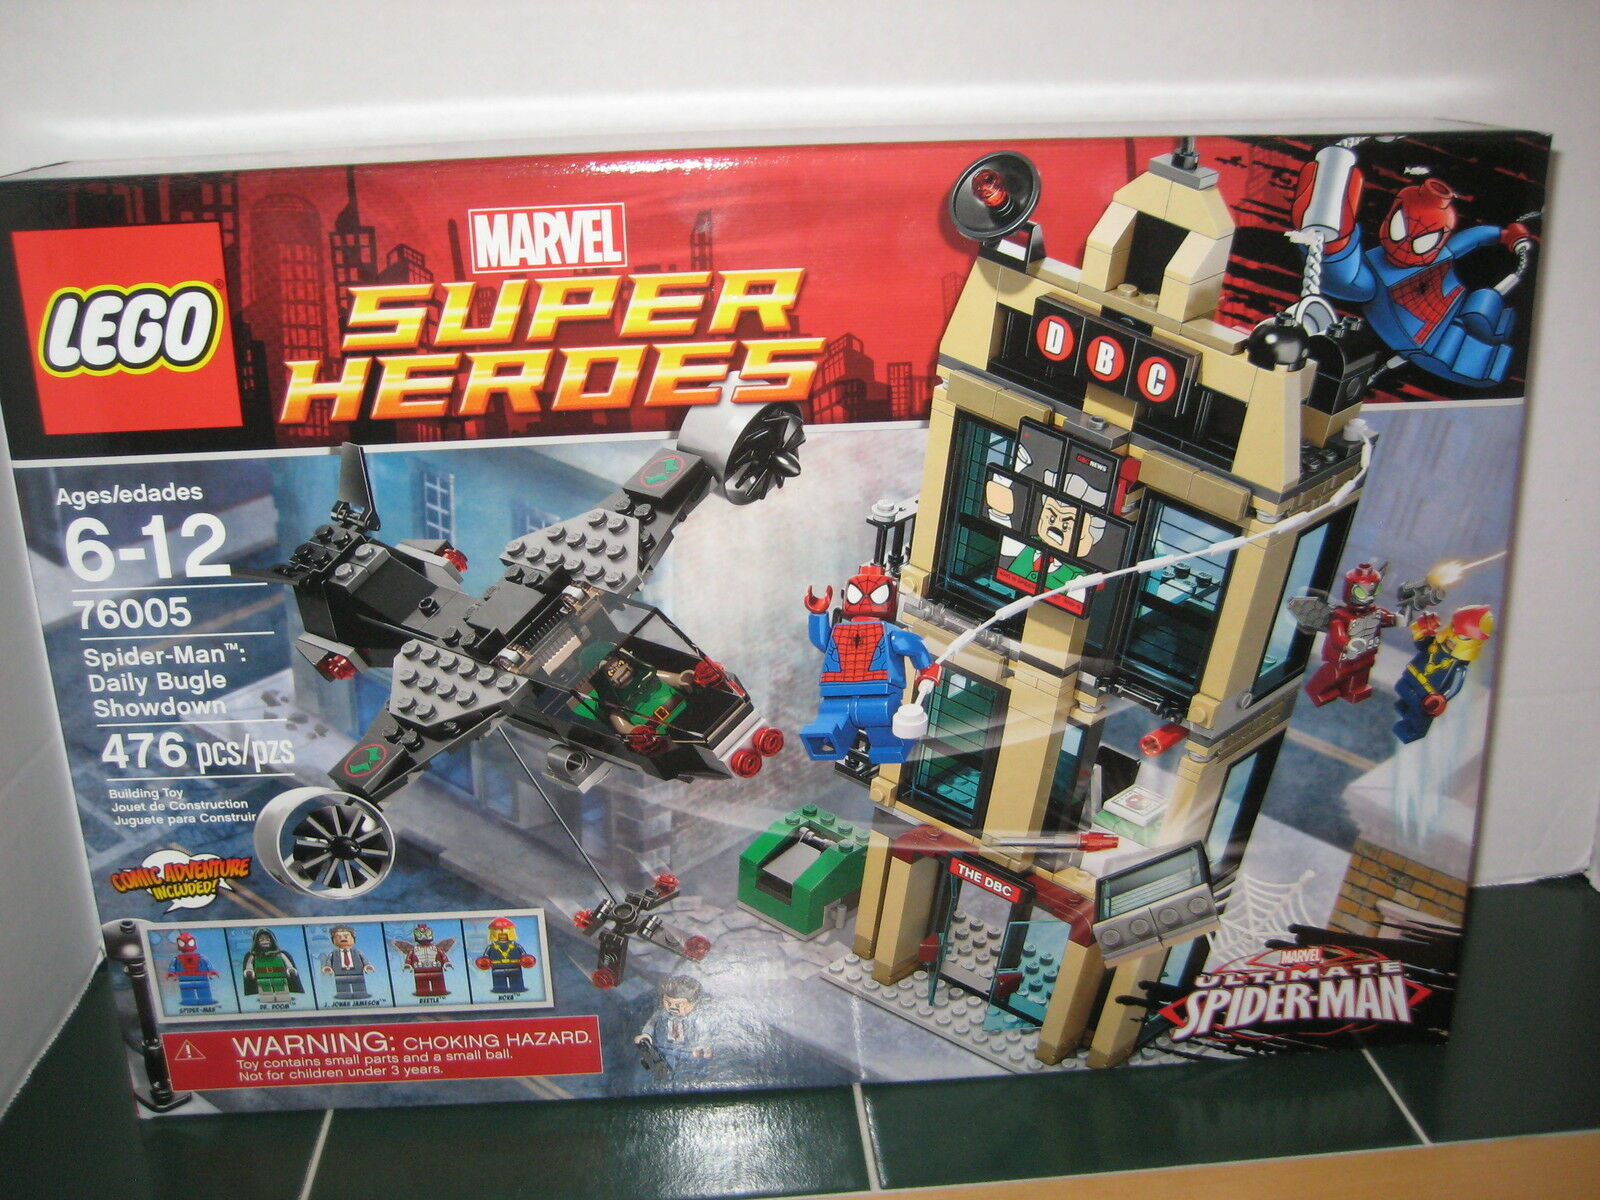 LEGO SPIDER-homme Daily Bugle Showdown  76005  Marvel Super Heroes  mode classique